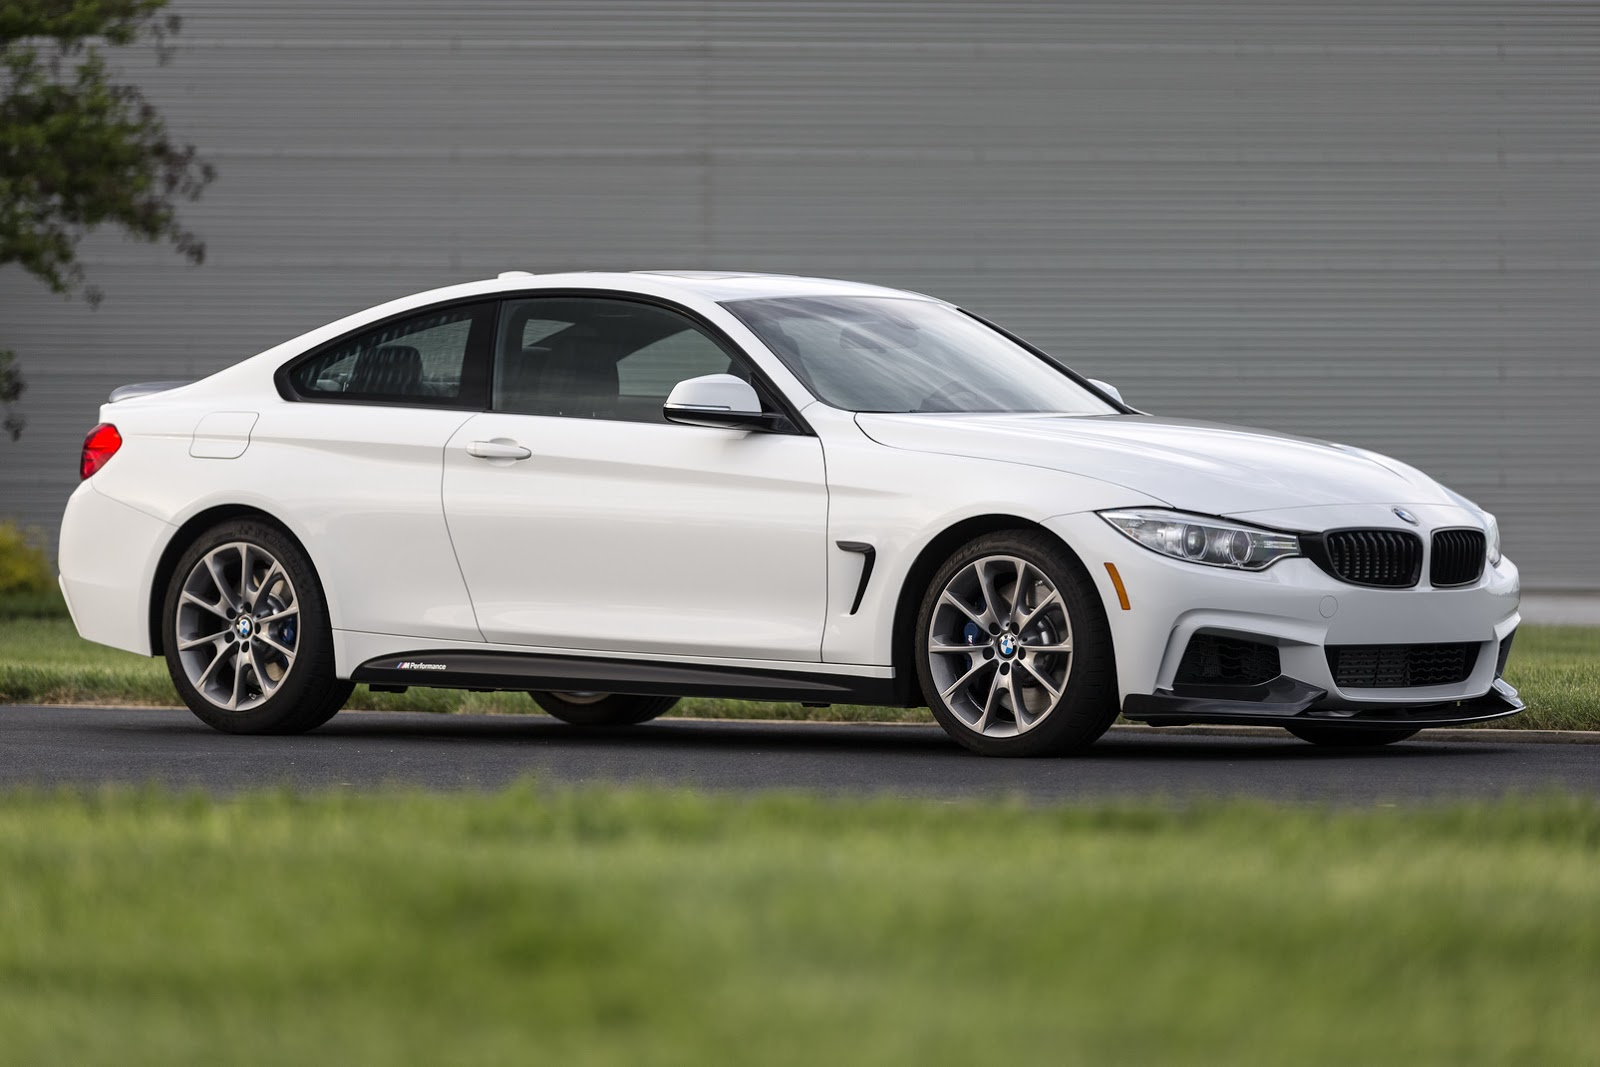 new bmw 435i zhp coupe with 335hp and lsd limited to 100. Black Bedroom Furniture Sets. Home Design Ideas